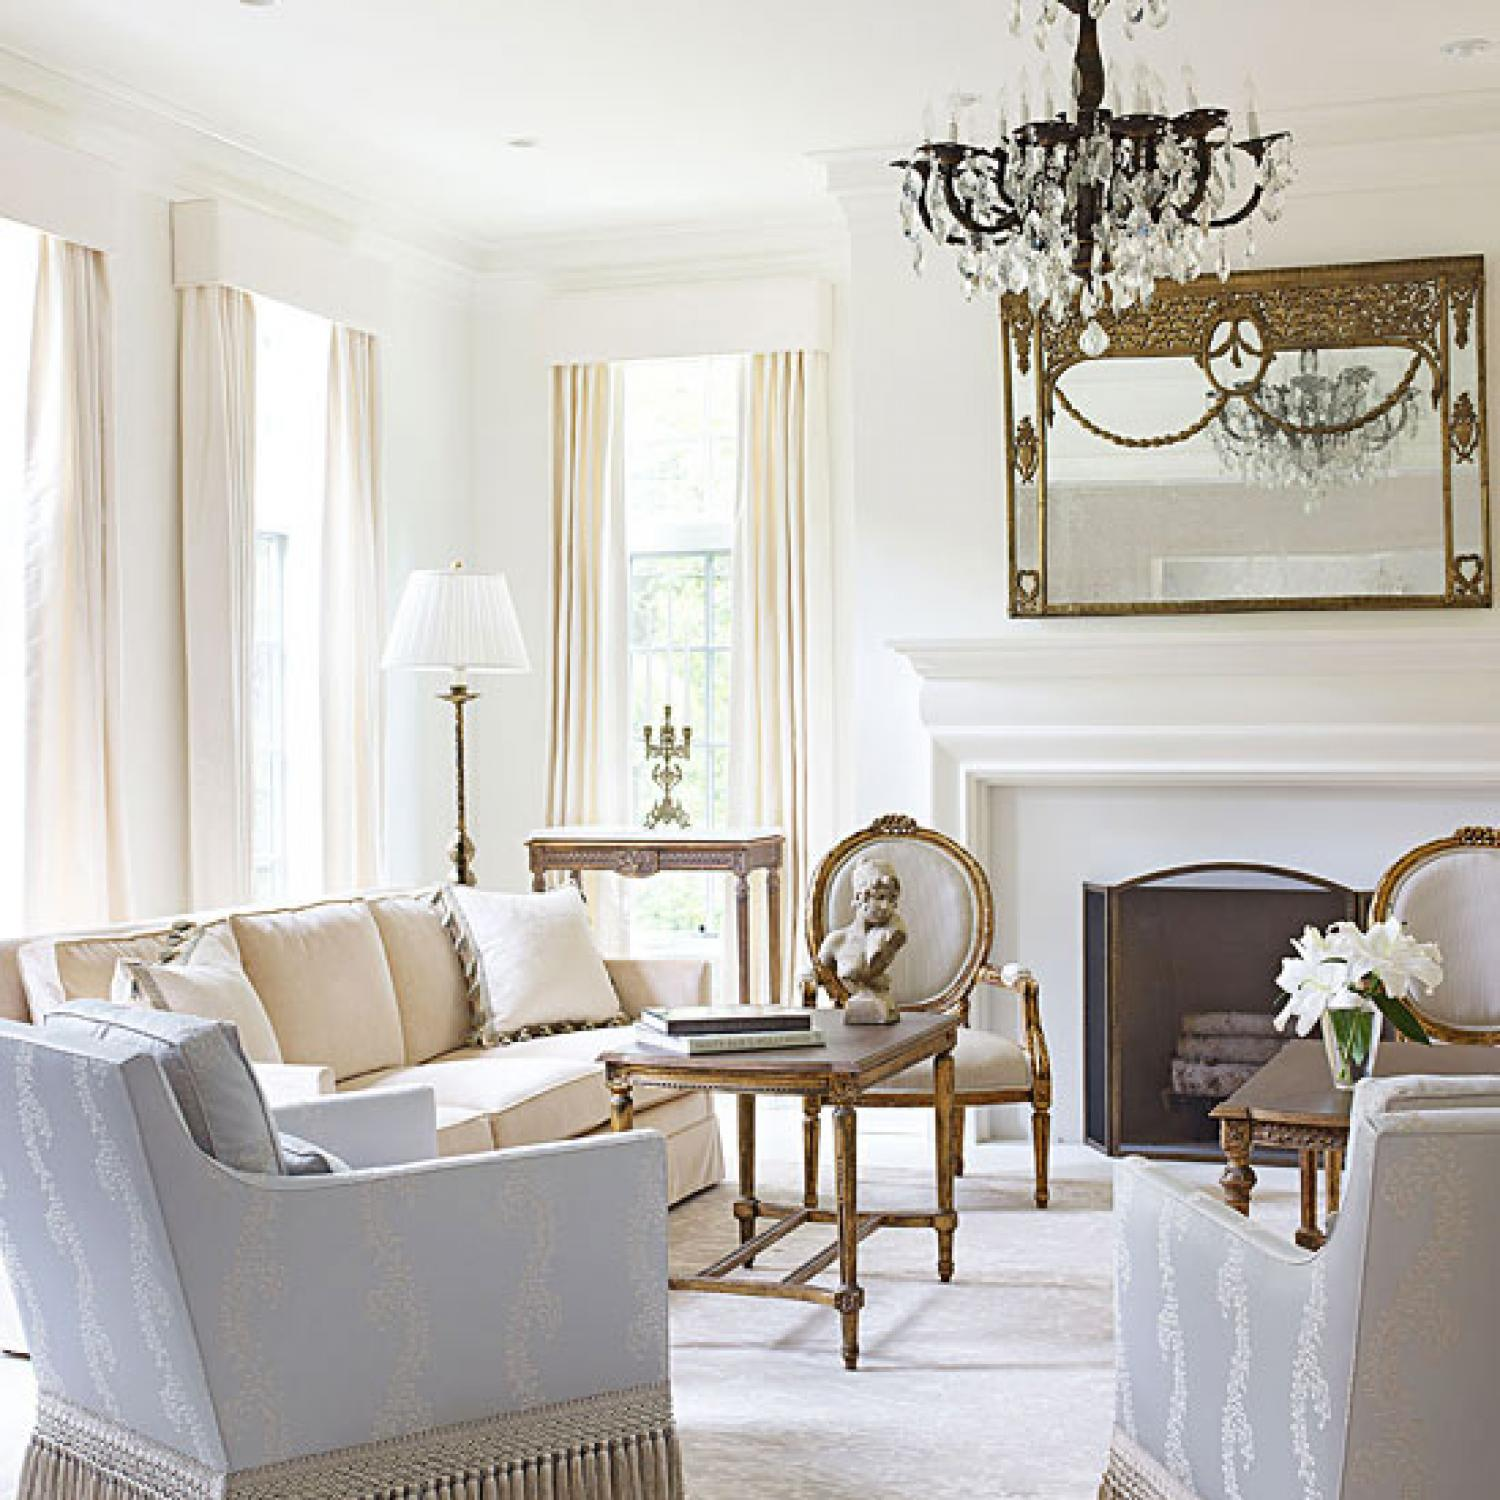 Home Design Ideas Classy: Bright, White, And Inviting Family Home